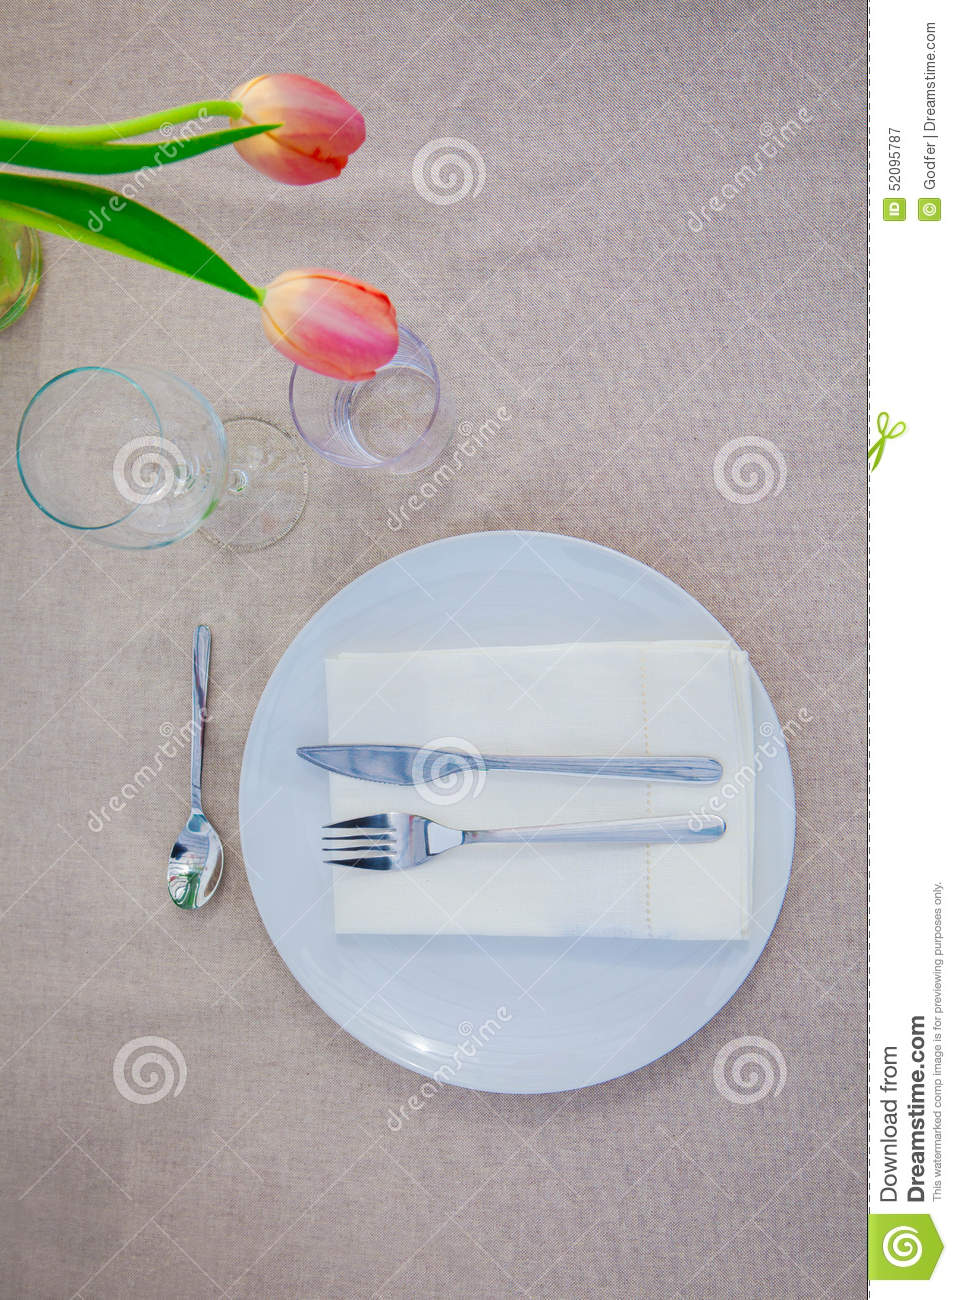 Simple meal table setting stock photo image 52095787 Simple table setting for lunch